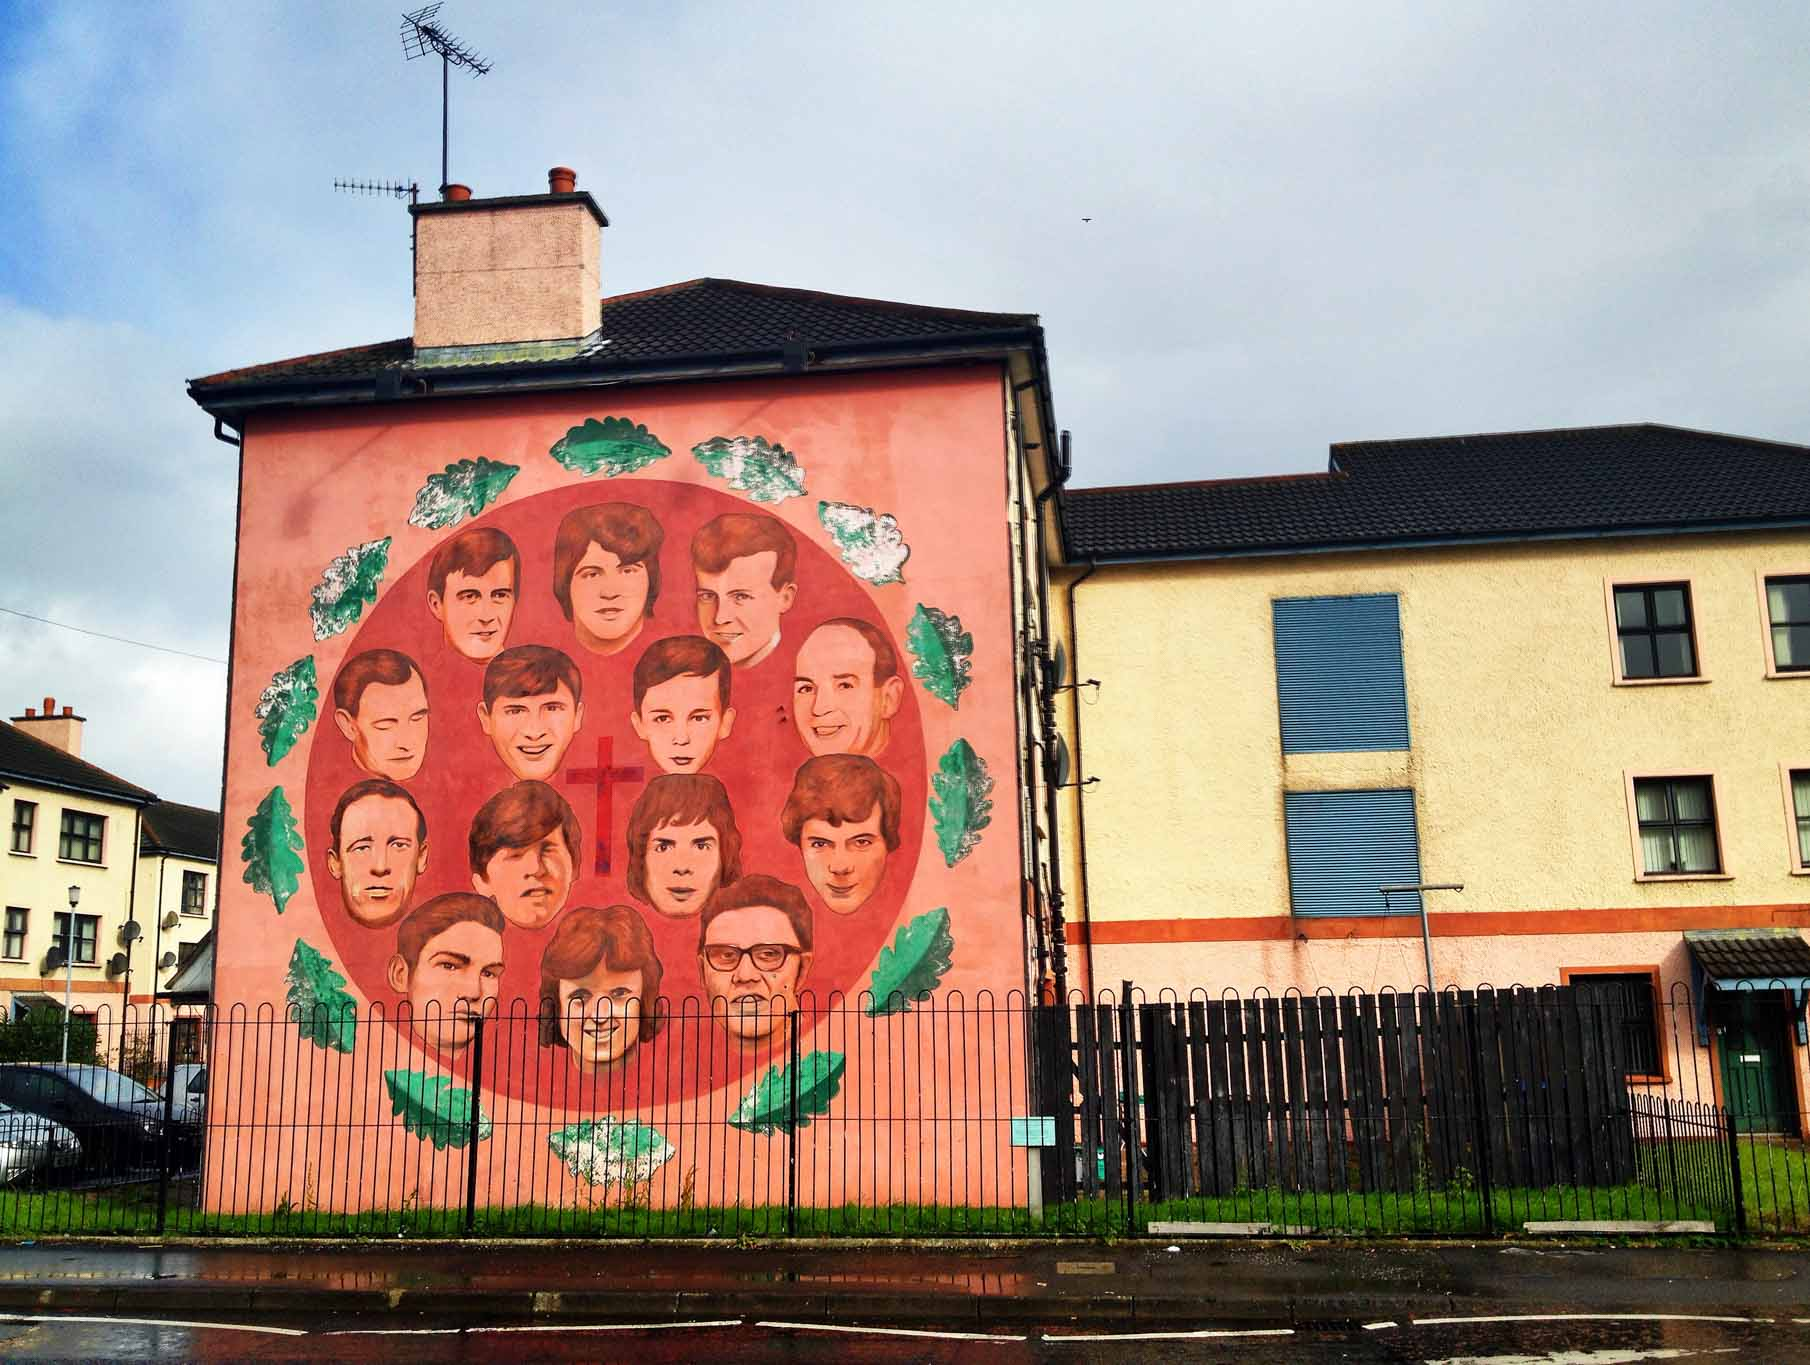 One of the Derry murals memorializing the victims of Bloody Sunday